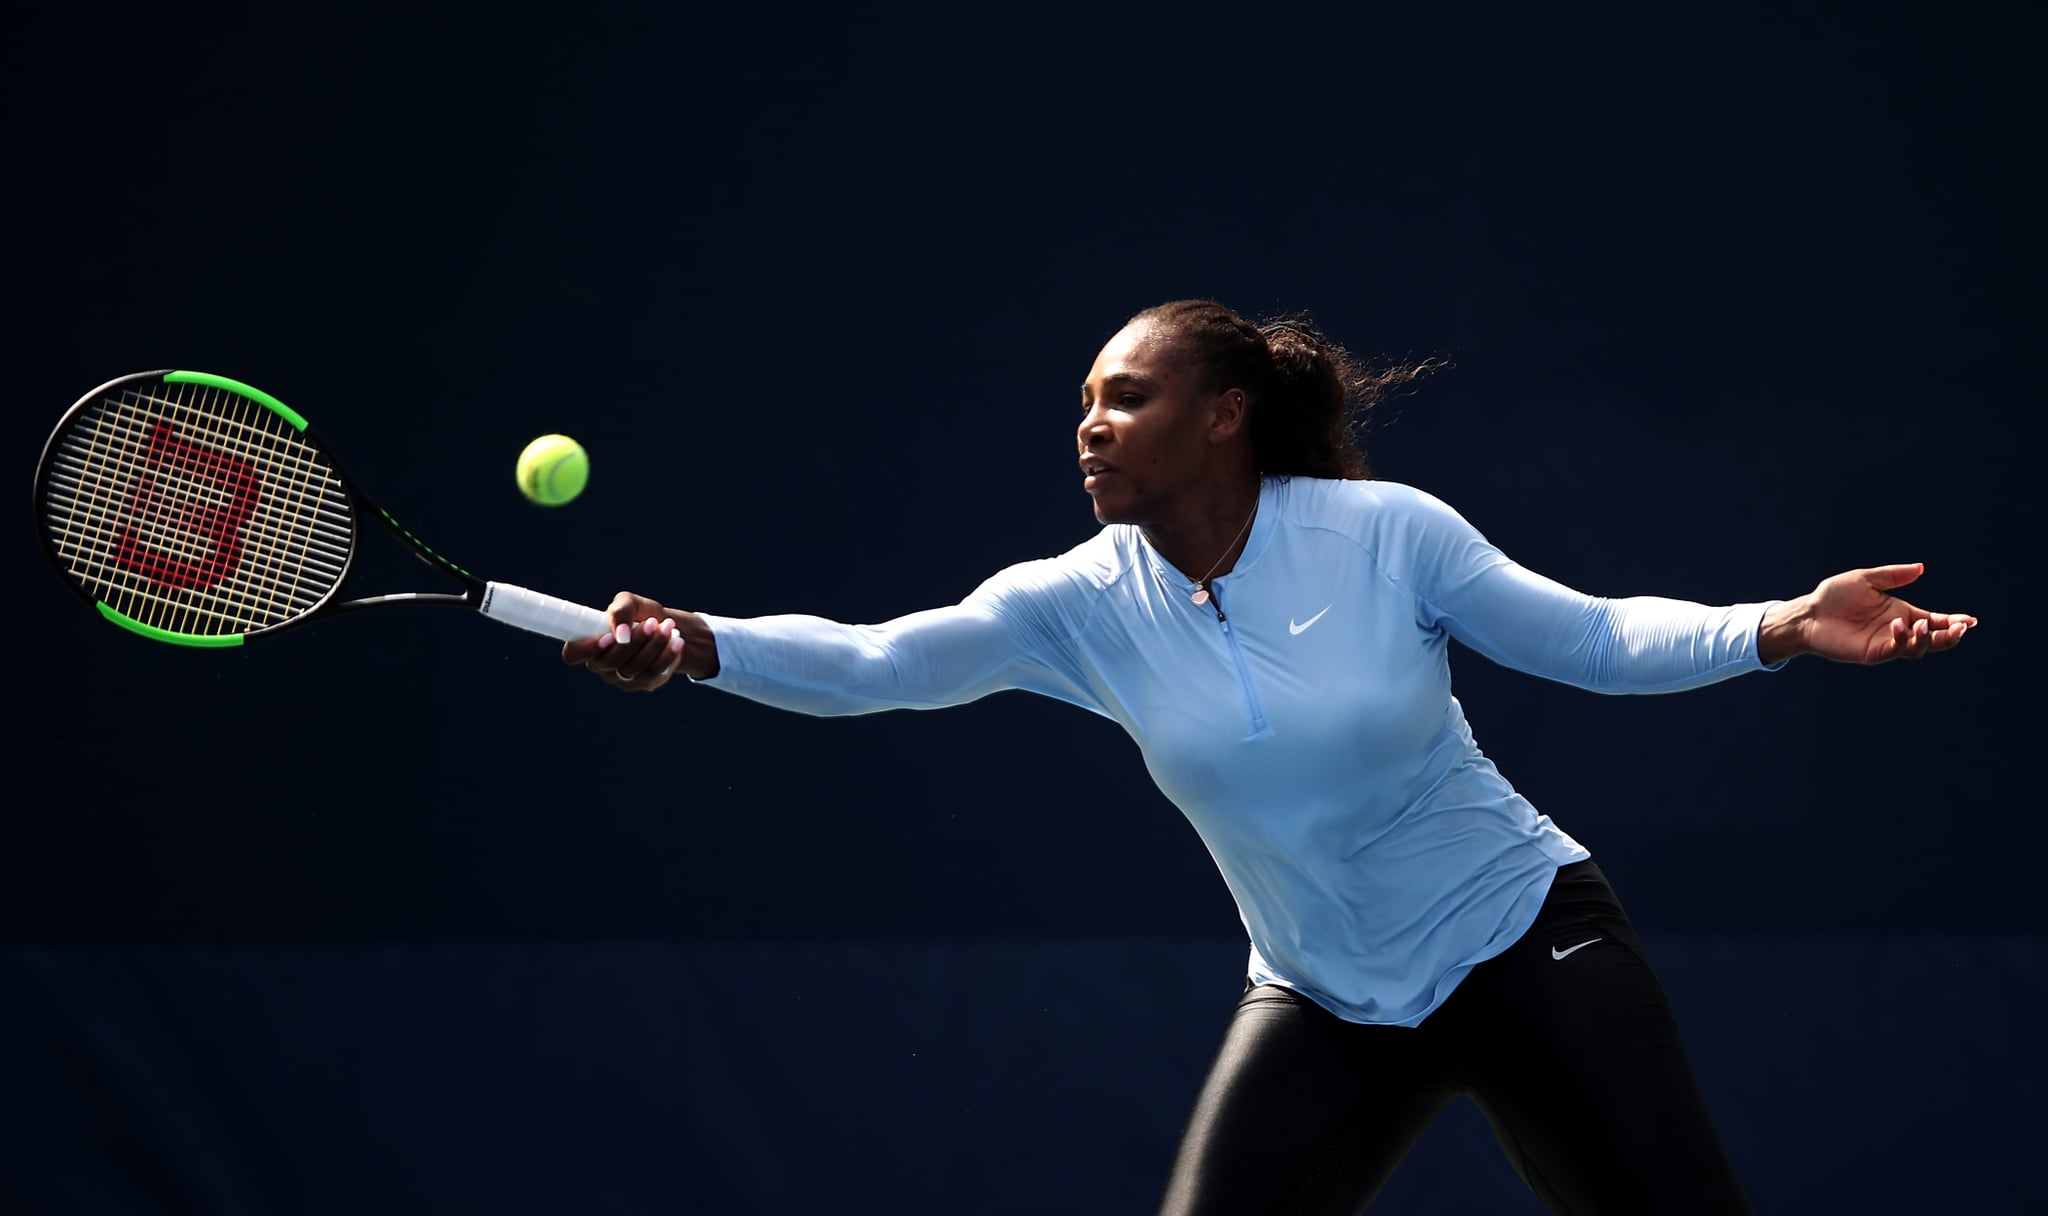 NEW YORK, NY - AUGUST 26:  Serena Williams of USA plays a forehand during previews for the US Open at USTA Billie Jean King National Tennis Centre on August 26, 2018 in the Flushig Neighbourhood of Queens borough of New York City.  (Photo by Julian Finney/Getty Images)